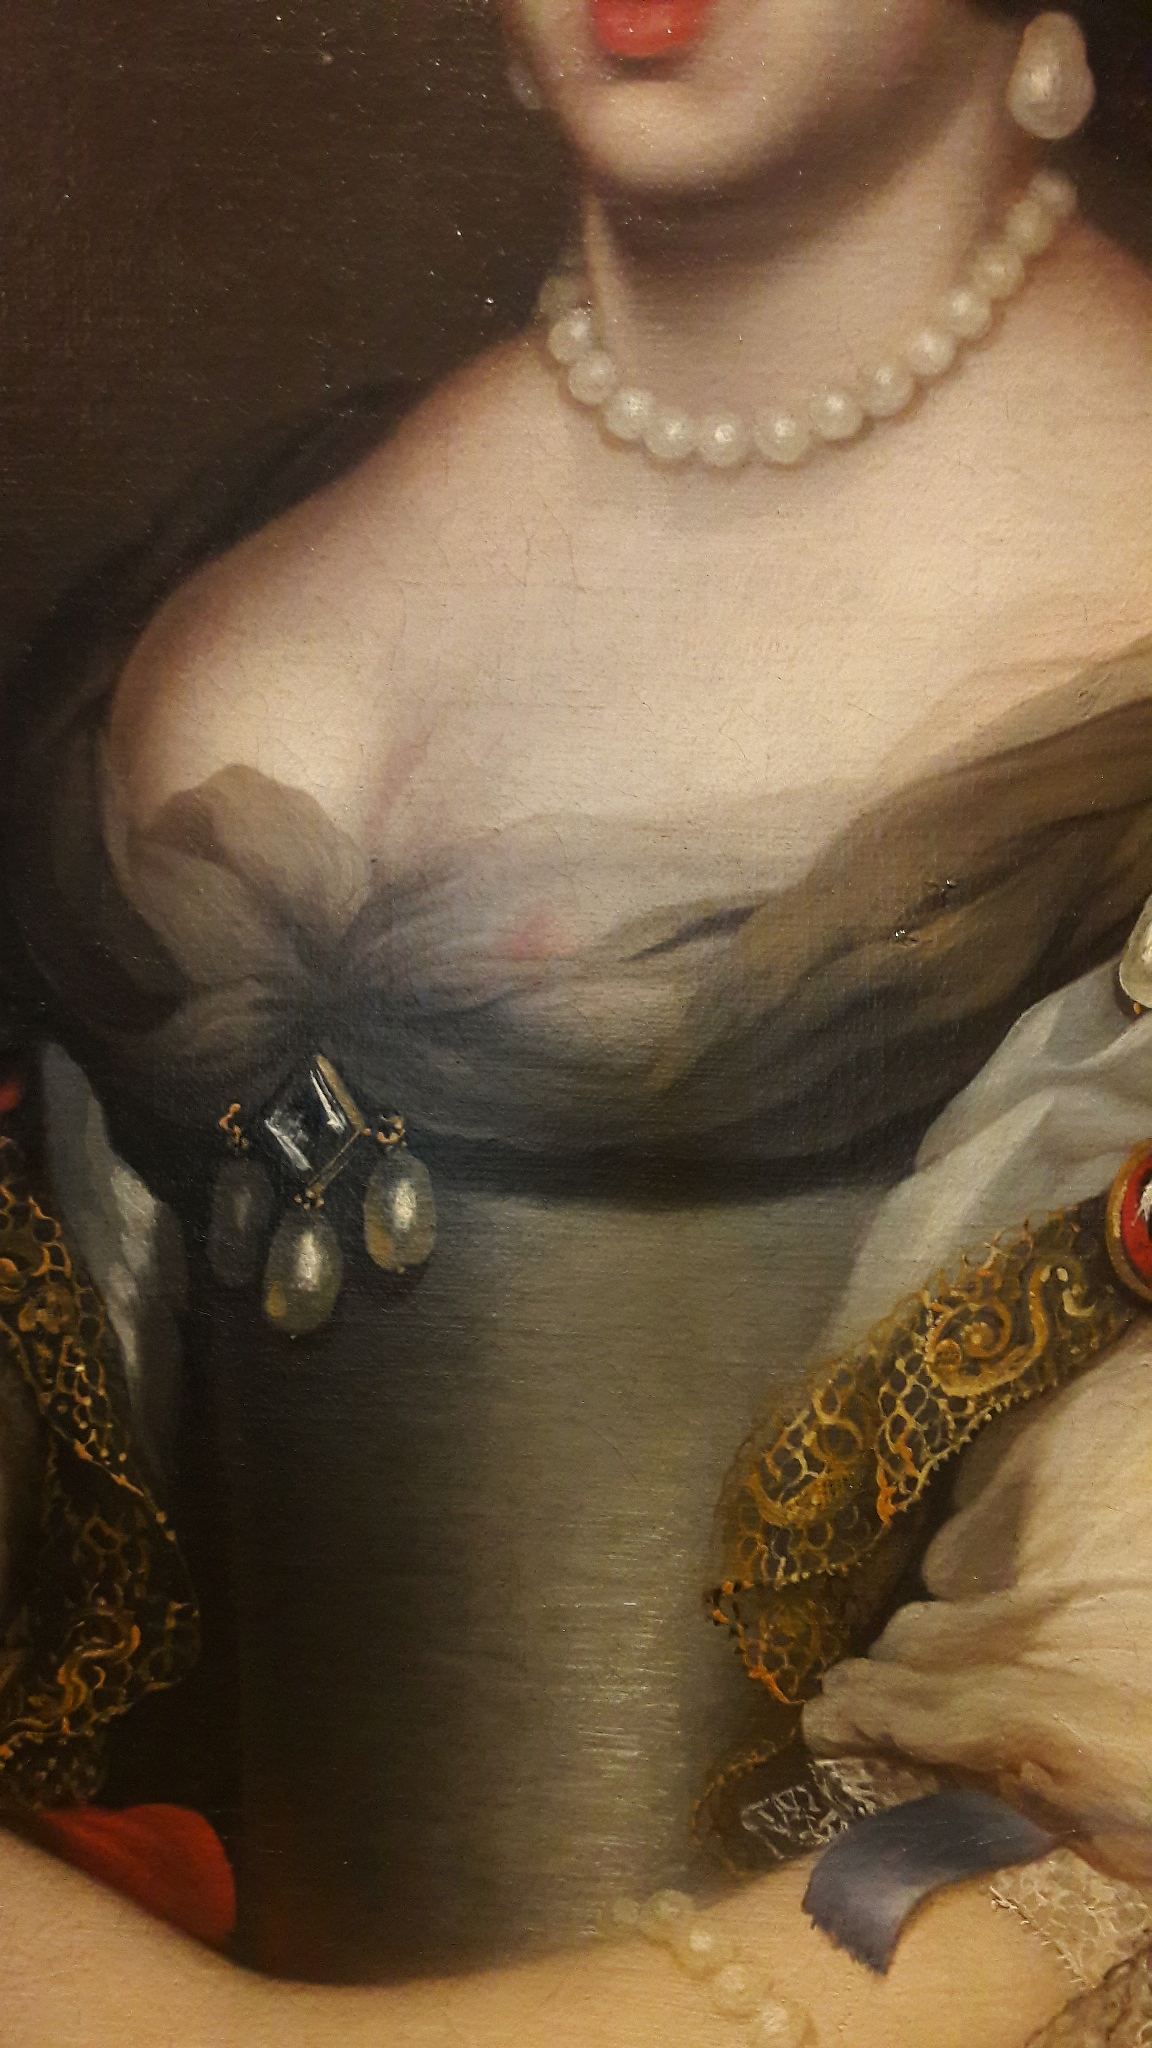 file:anonymous marie casimire sobieska with a nipple visible (detail